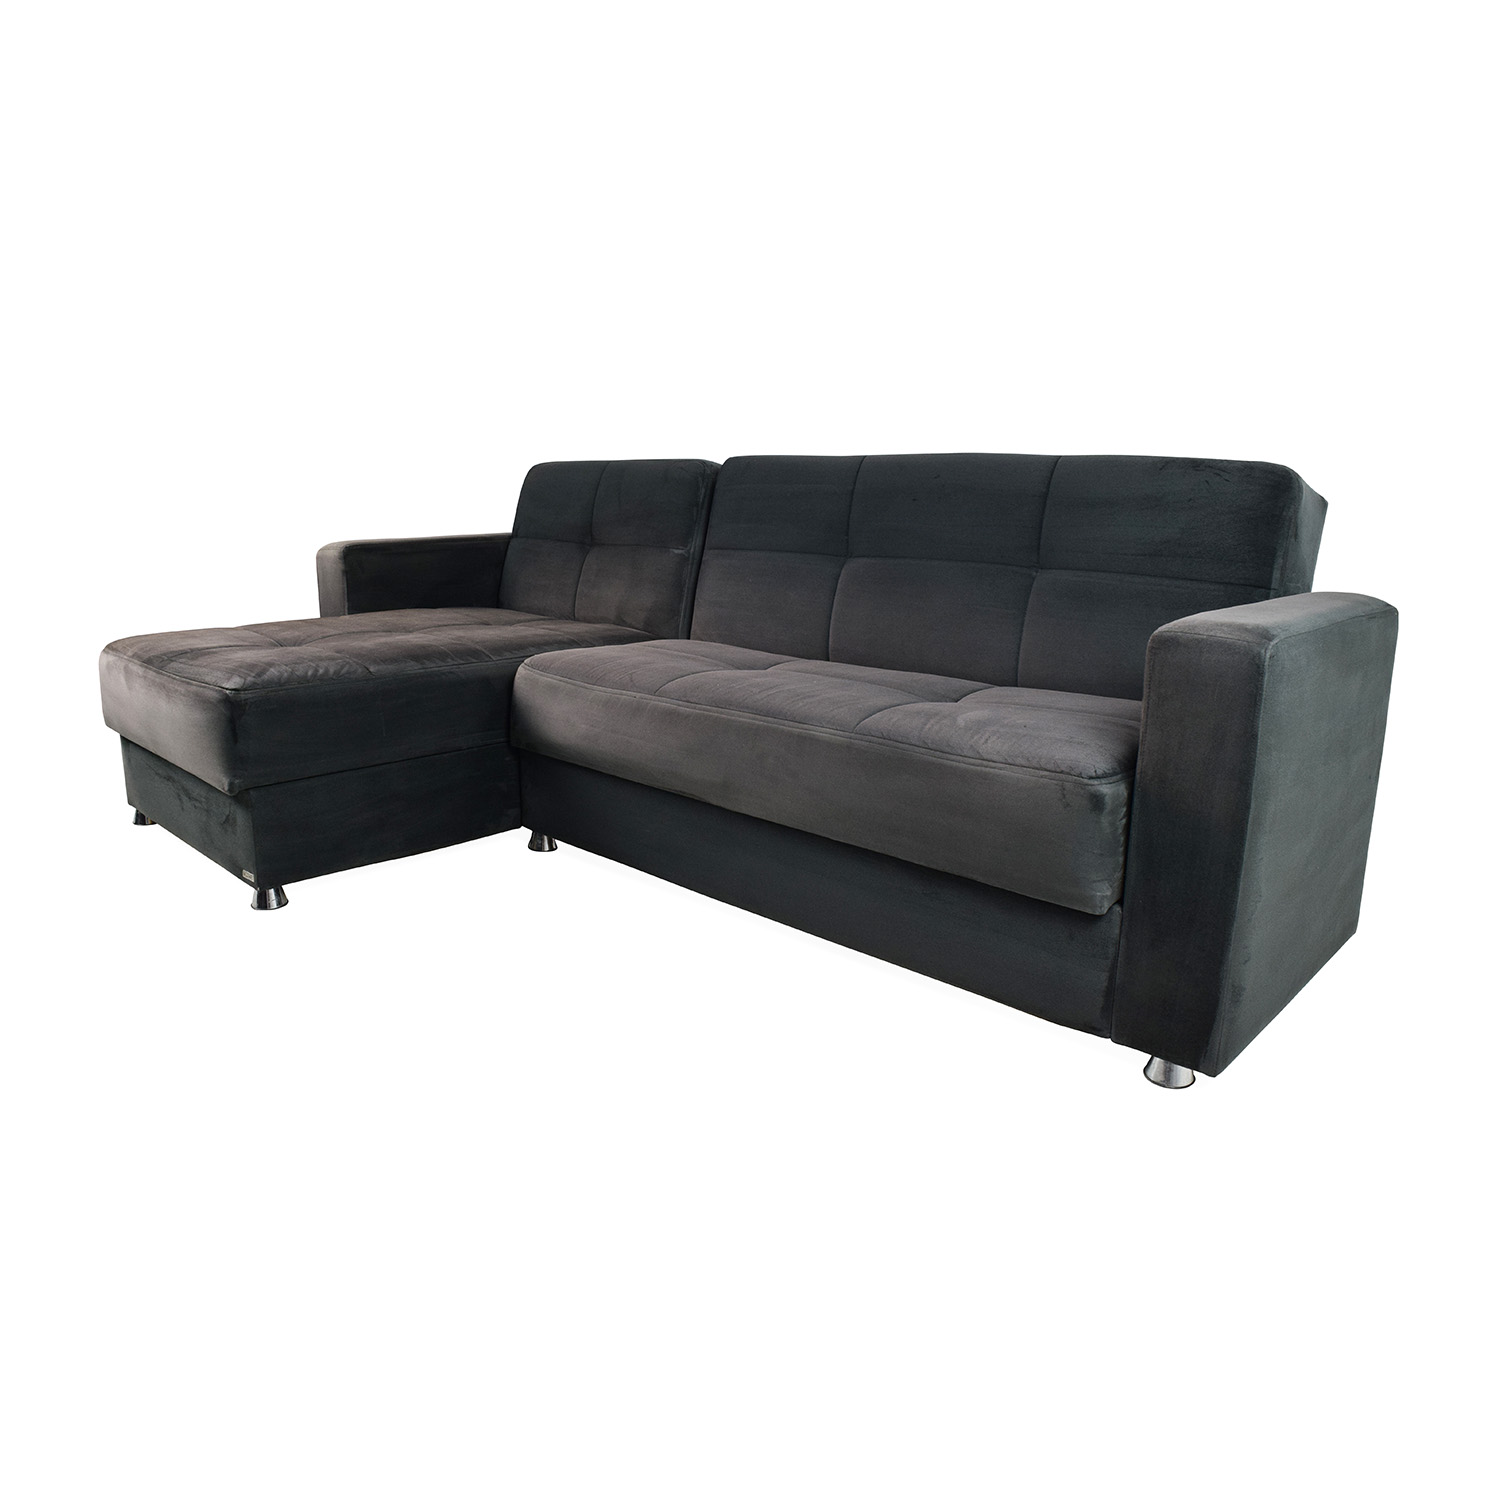 ... Bellona Bellona Sectional With Storage Second Hand ...